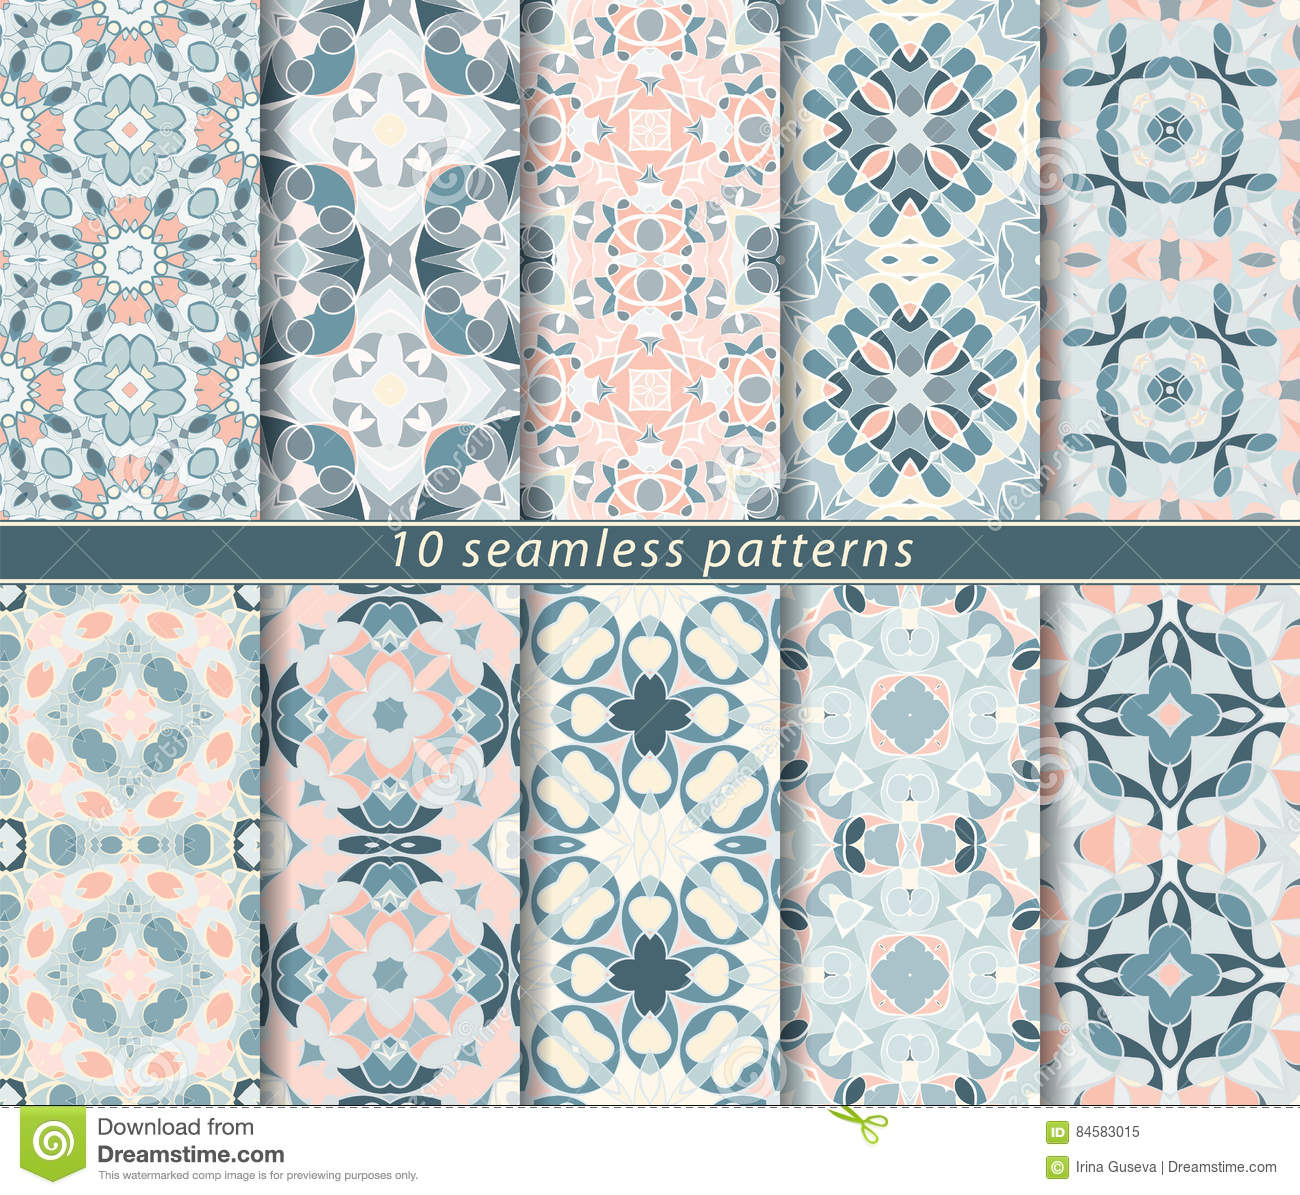 Ten-shades-of-gray-any-shade-of-blue-an-irreverant-look-at-local.